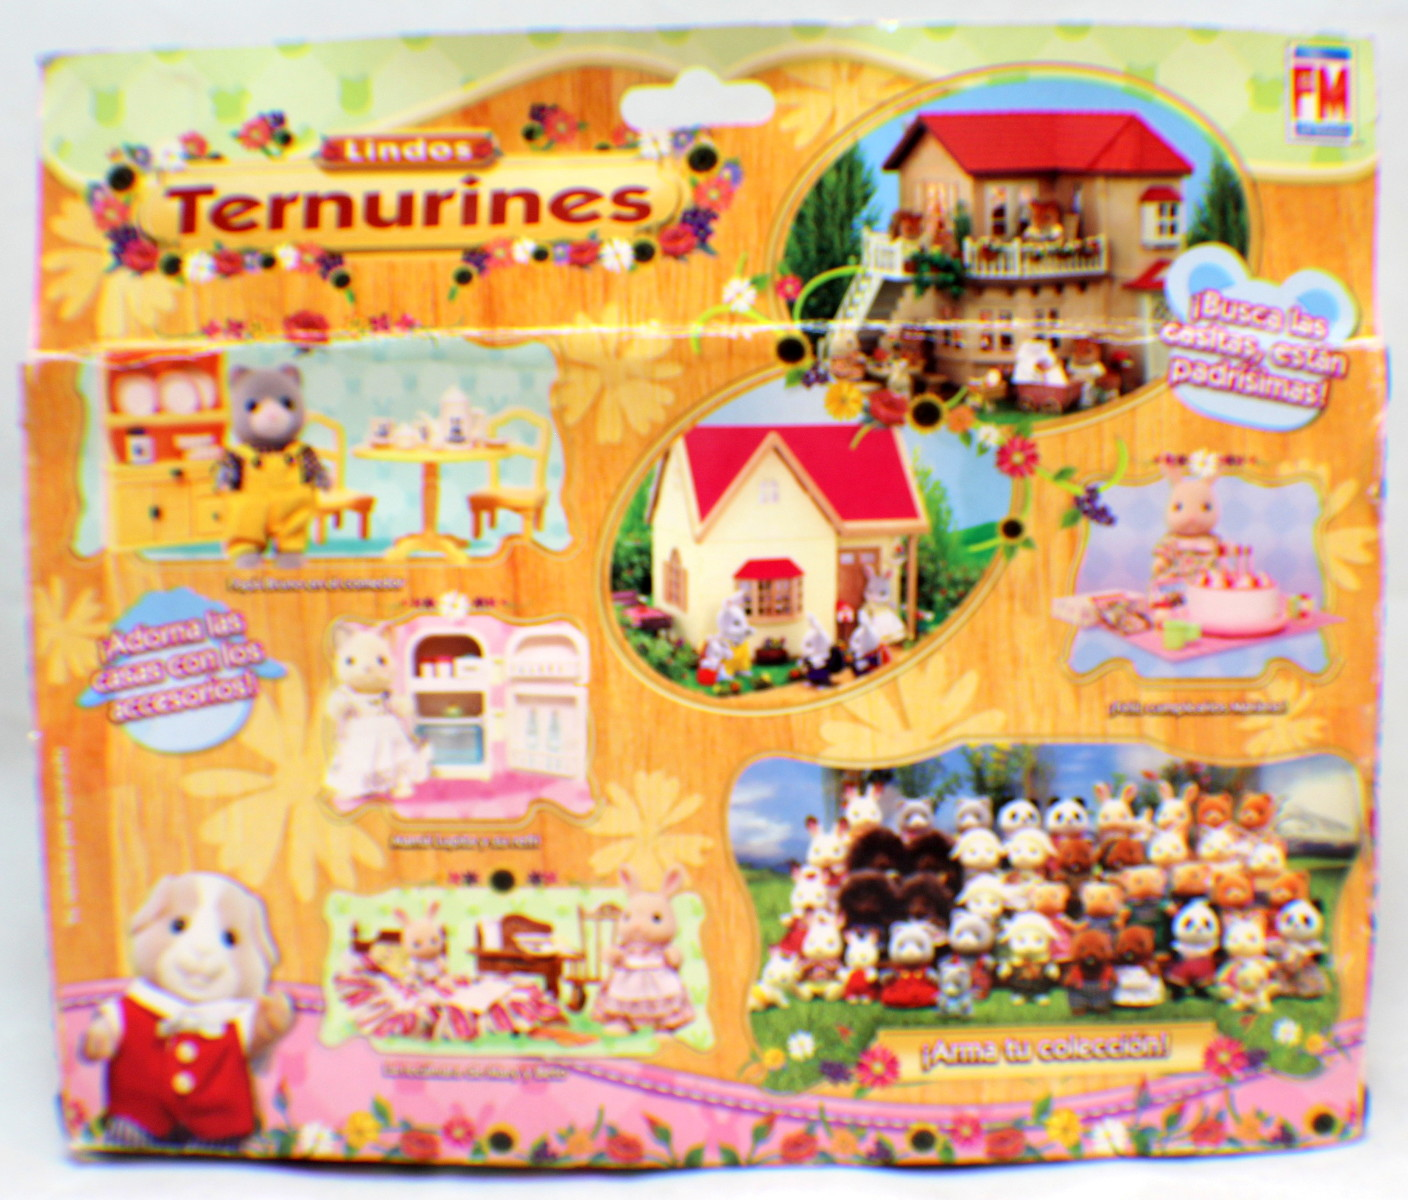 ... Sylvanian Families Kittens Cat Ternurines Living Room Set Rare Mexican  Packaging